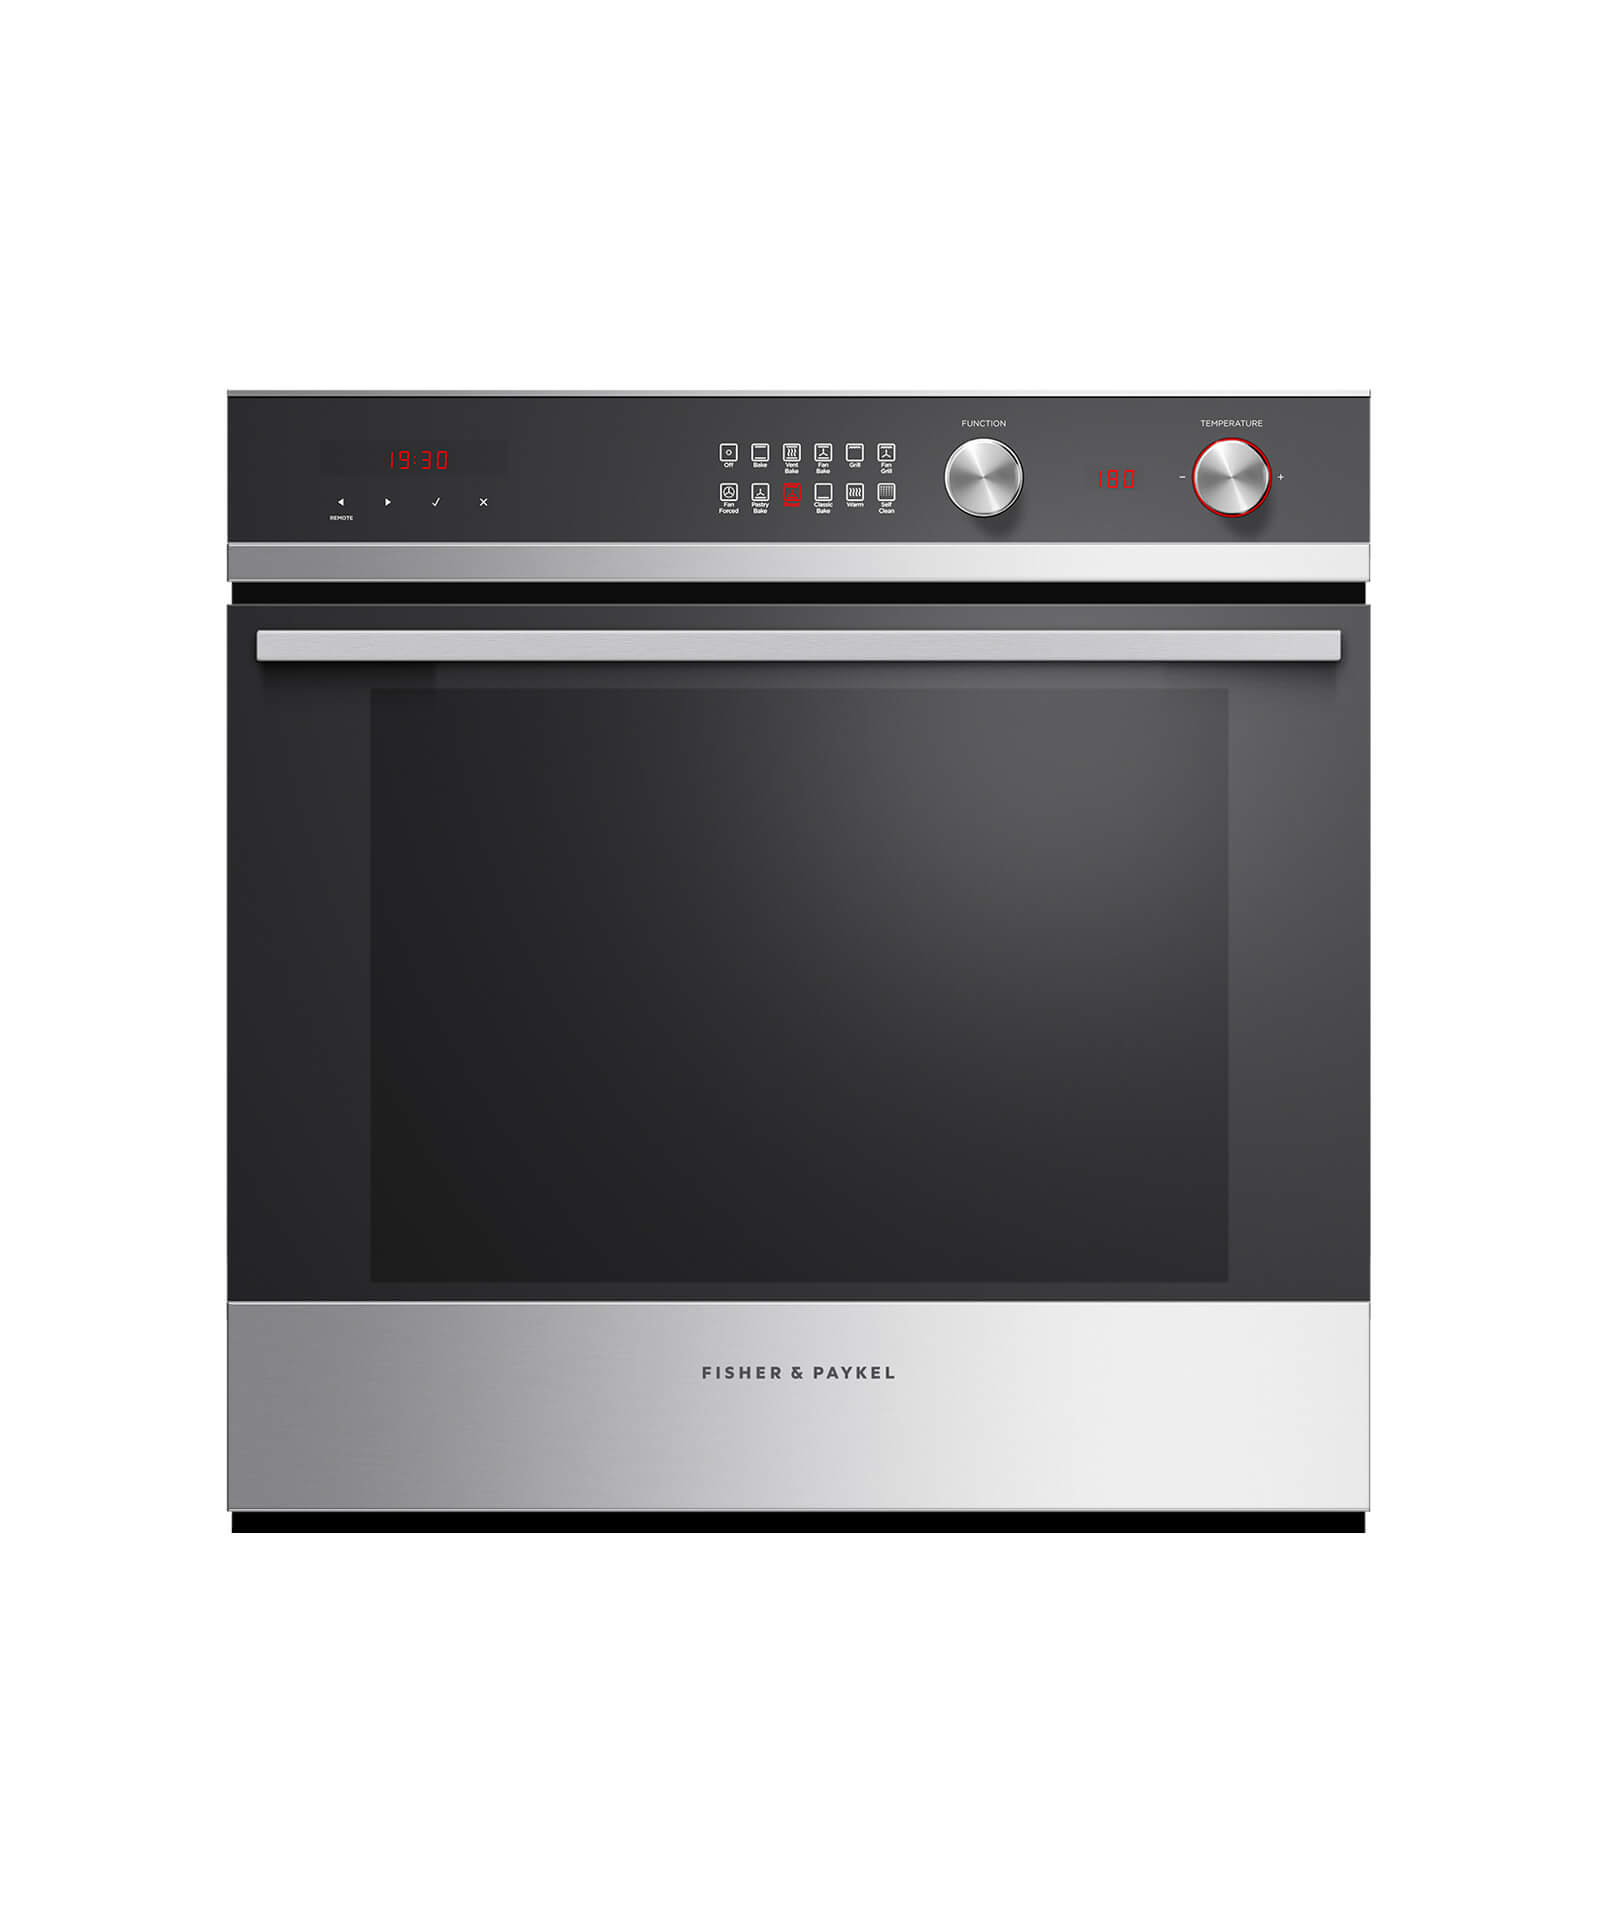 OB60SD11PX1 - 60cm 11 Function Built-in Oven - 85L Companion - 81572